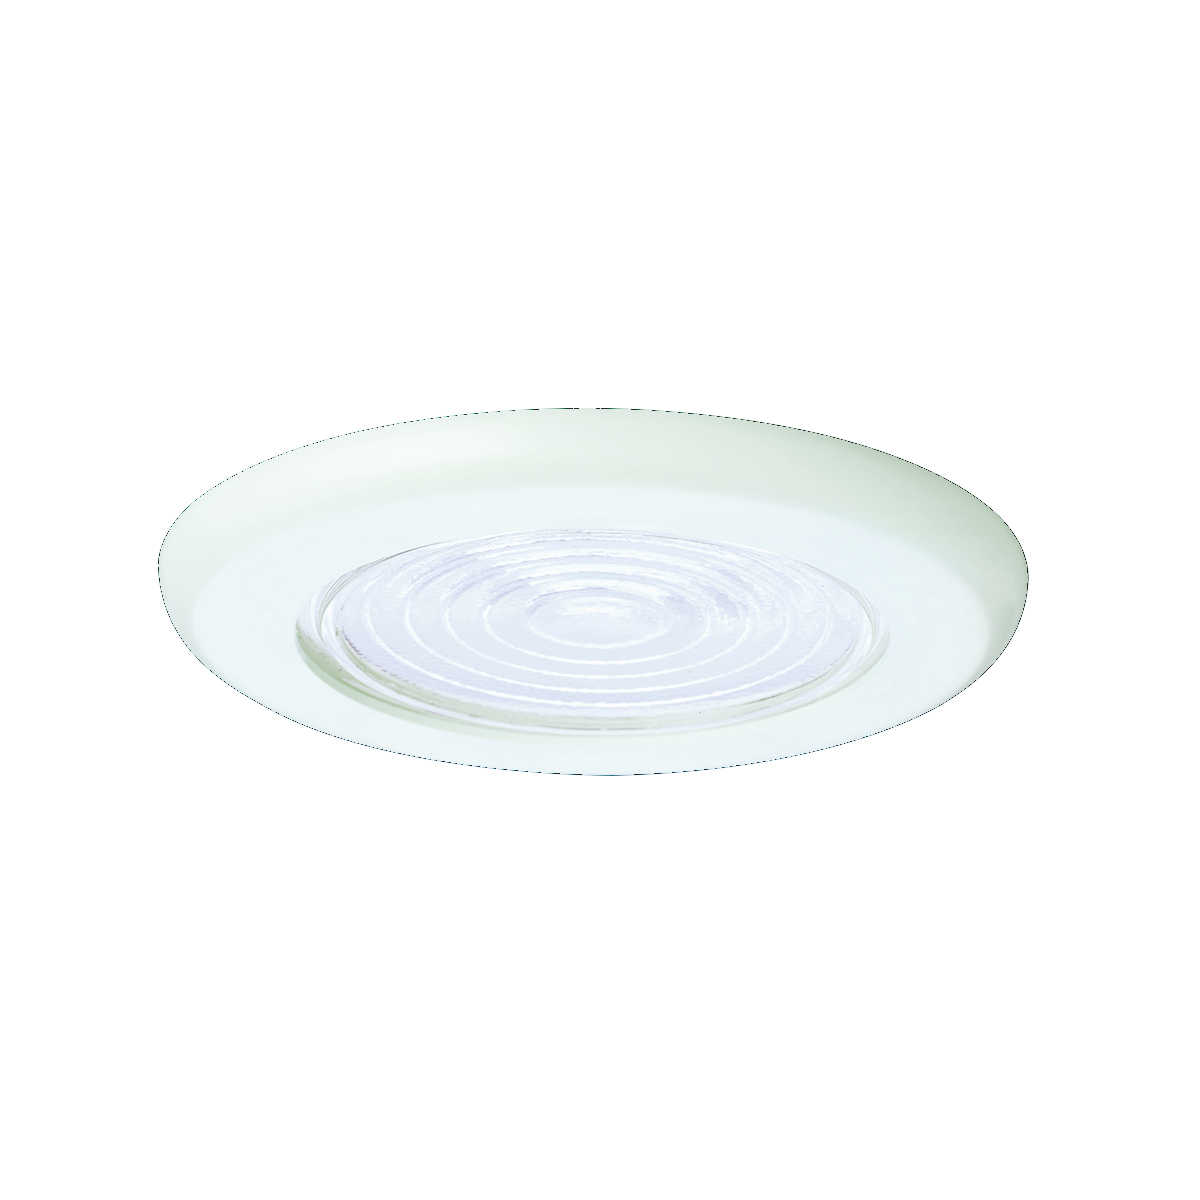 Hubbell Prescolite,TL62,Hubbell® TL62 Line Voltage Trim, Fresnel Shower Trim, Round Baffle Style, 6.000 IN Diameter, Color: White, Compatibility: DBX, IBX, FT, Ceiling Mount